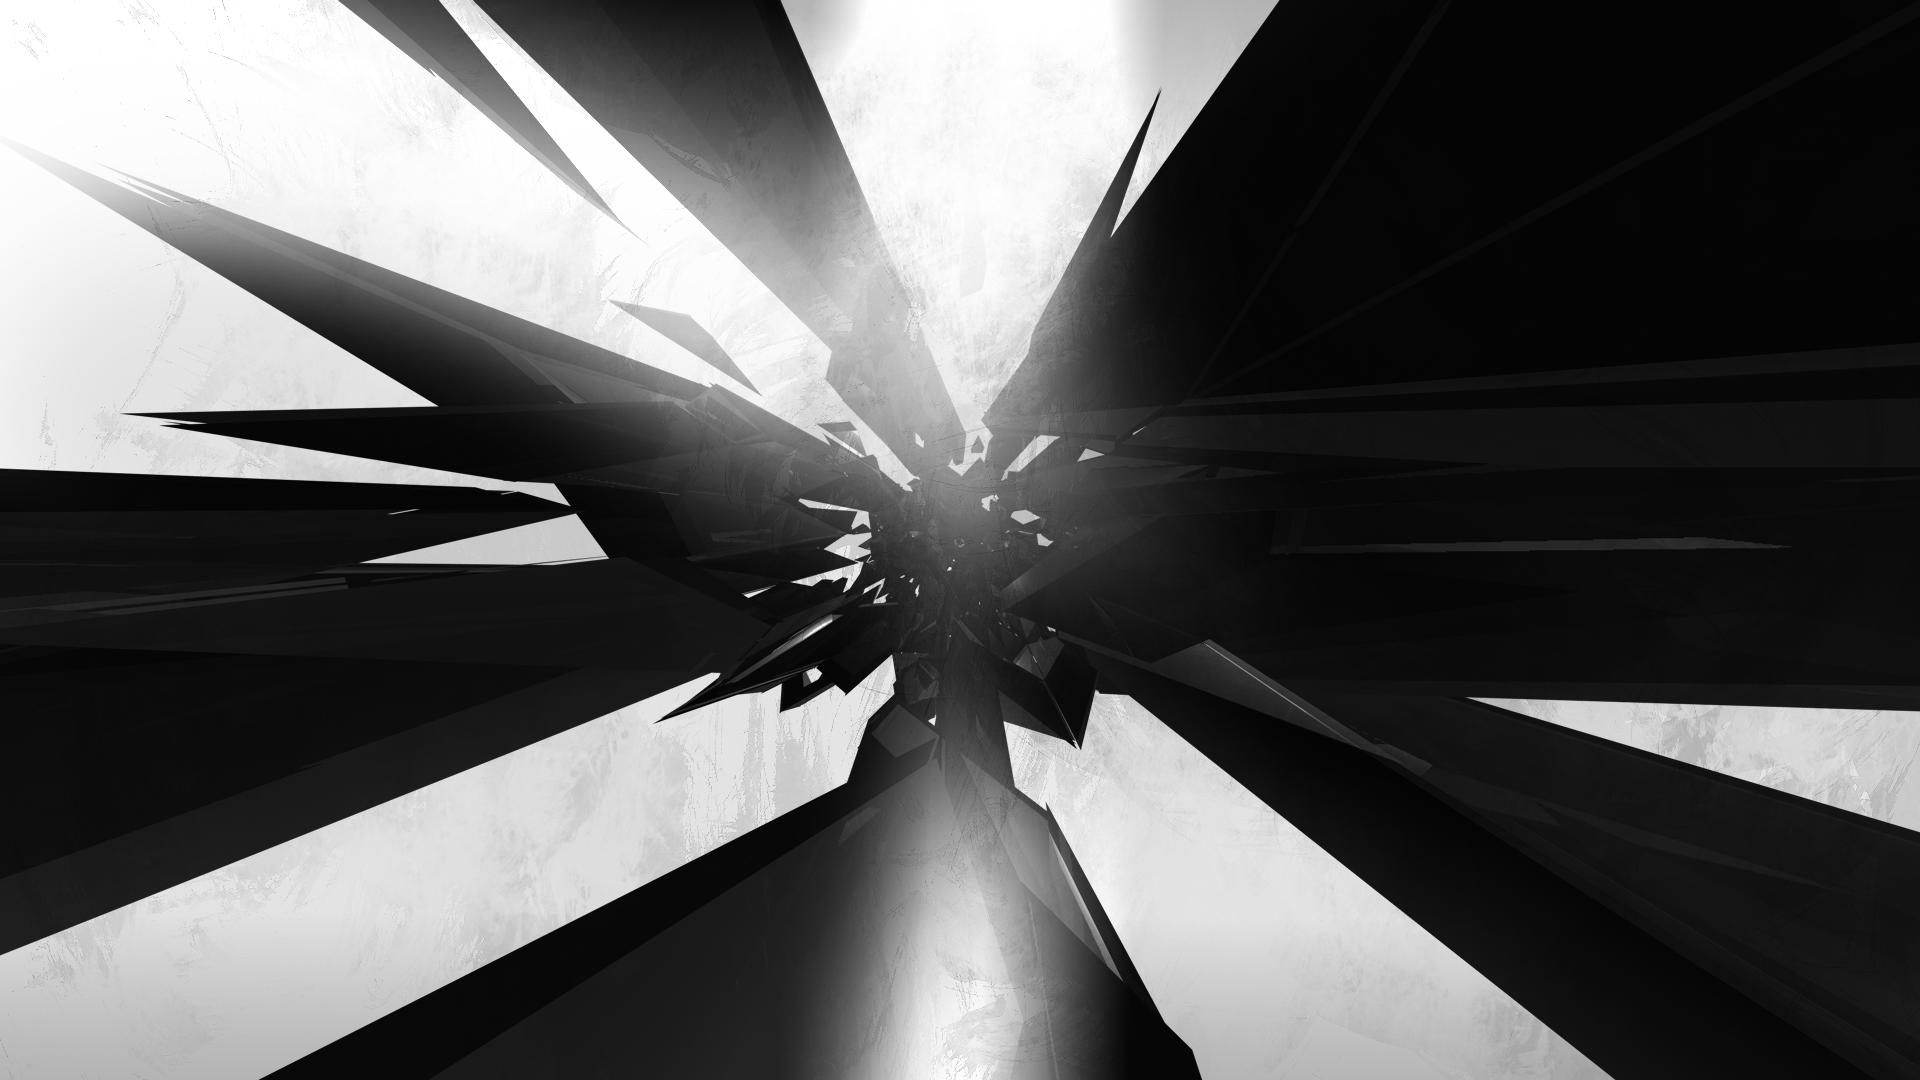 Another Black And White Abstract Wallpaper by TomSimo on DeviantArt